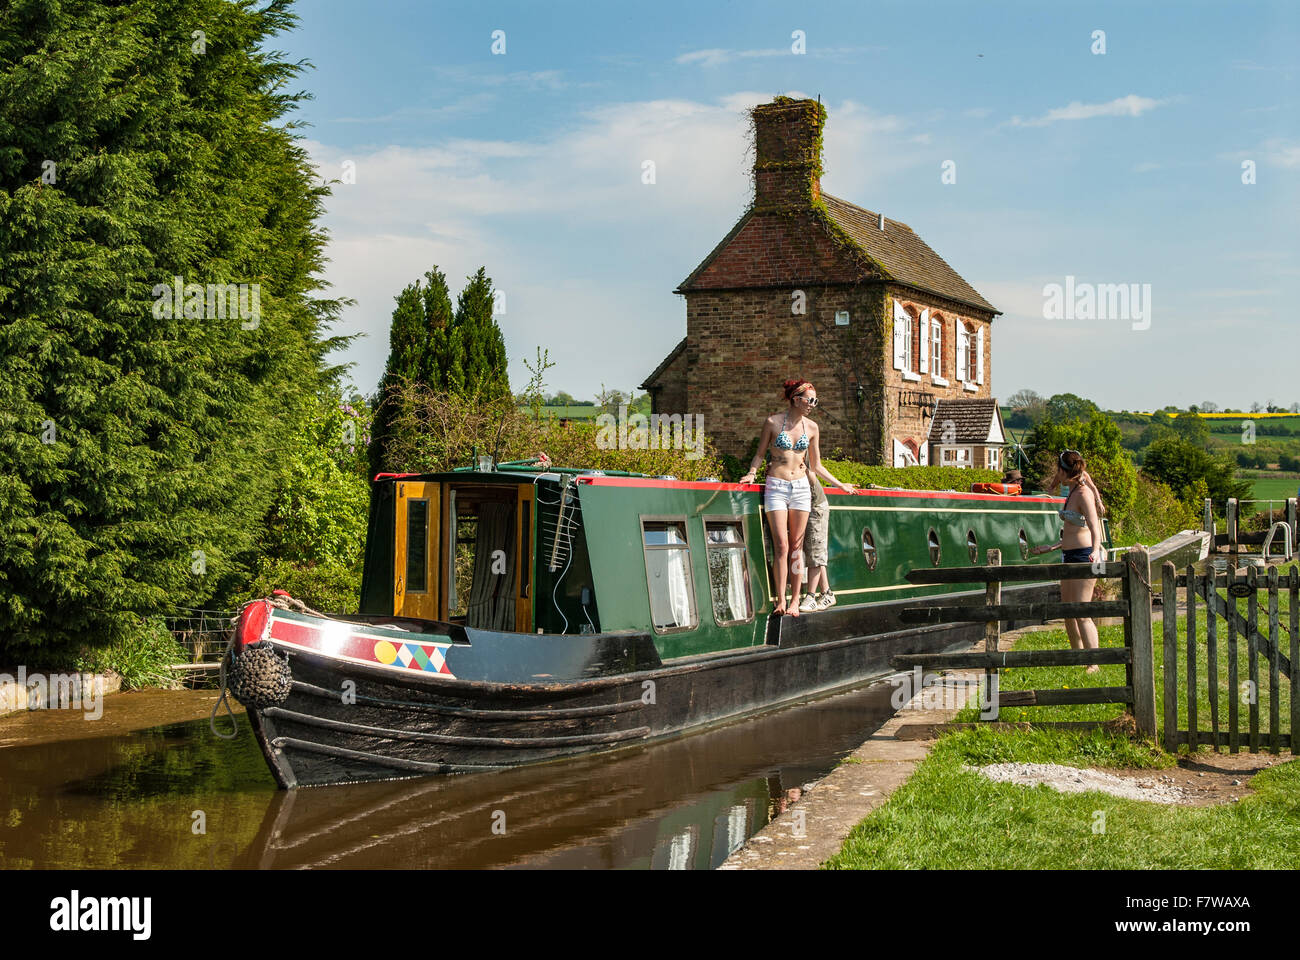 Narrowboat transiting Somerton deep lock on the Oxford Canal, England.UK. - Stock Image